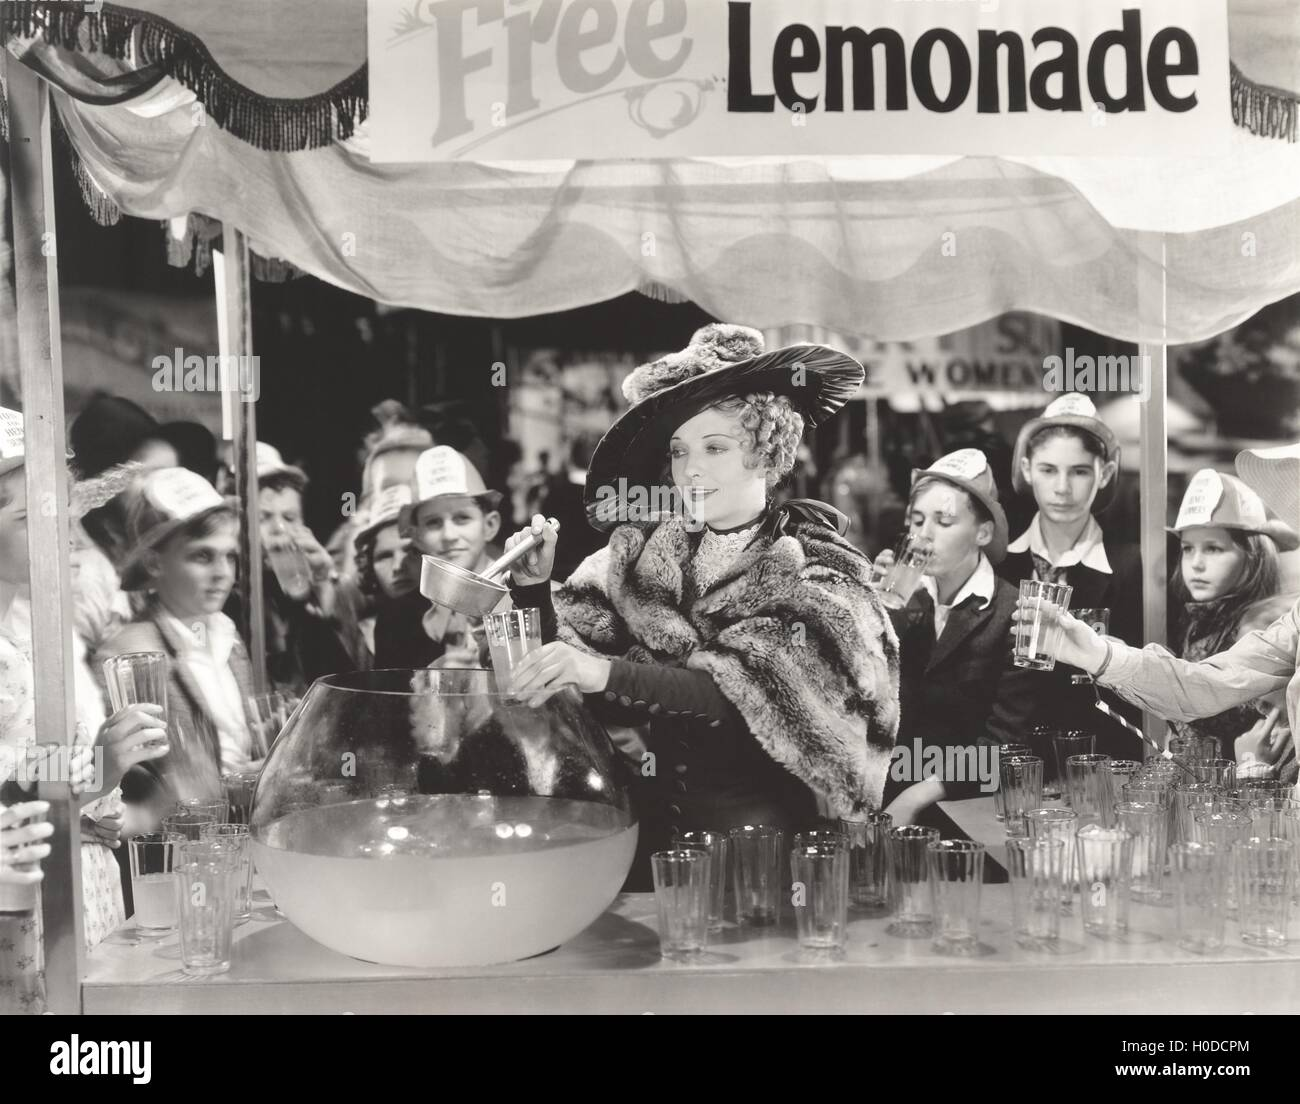 Woman giving out free lemonade to children at fair - Stock Image